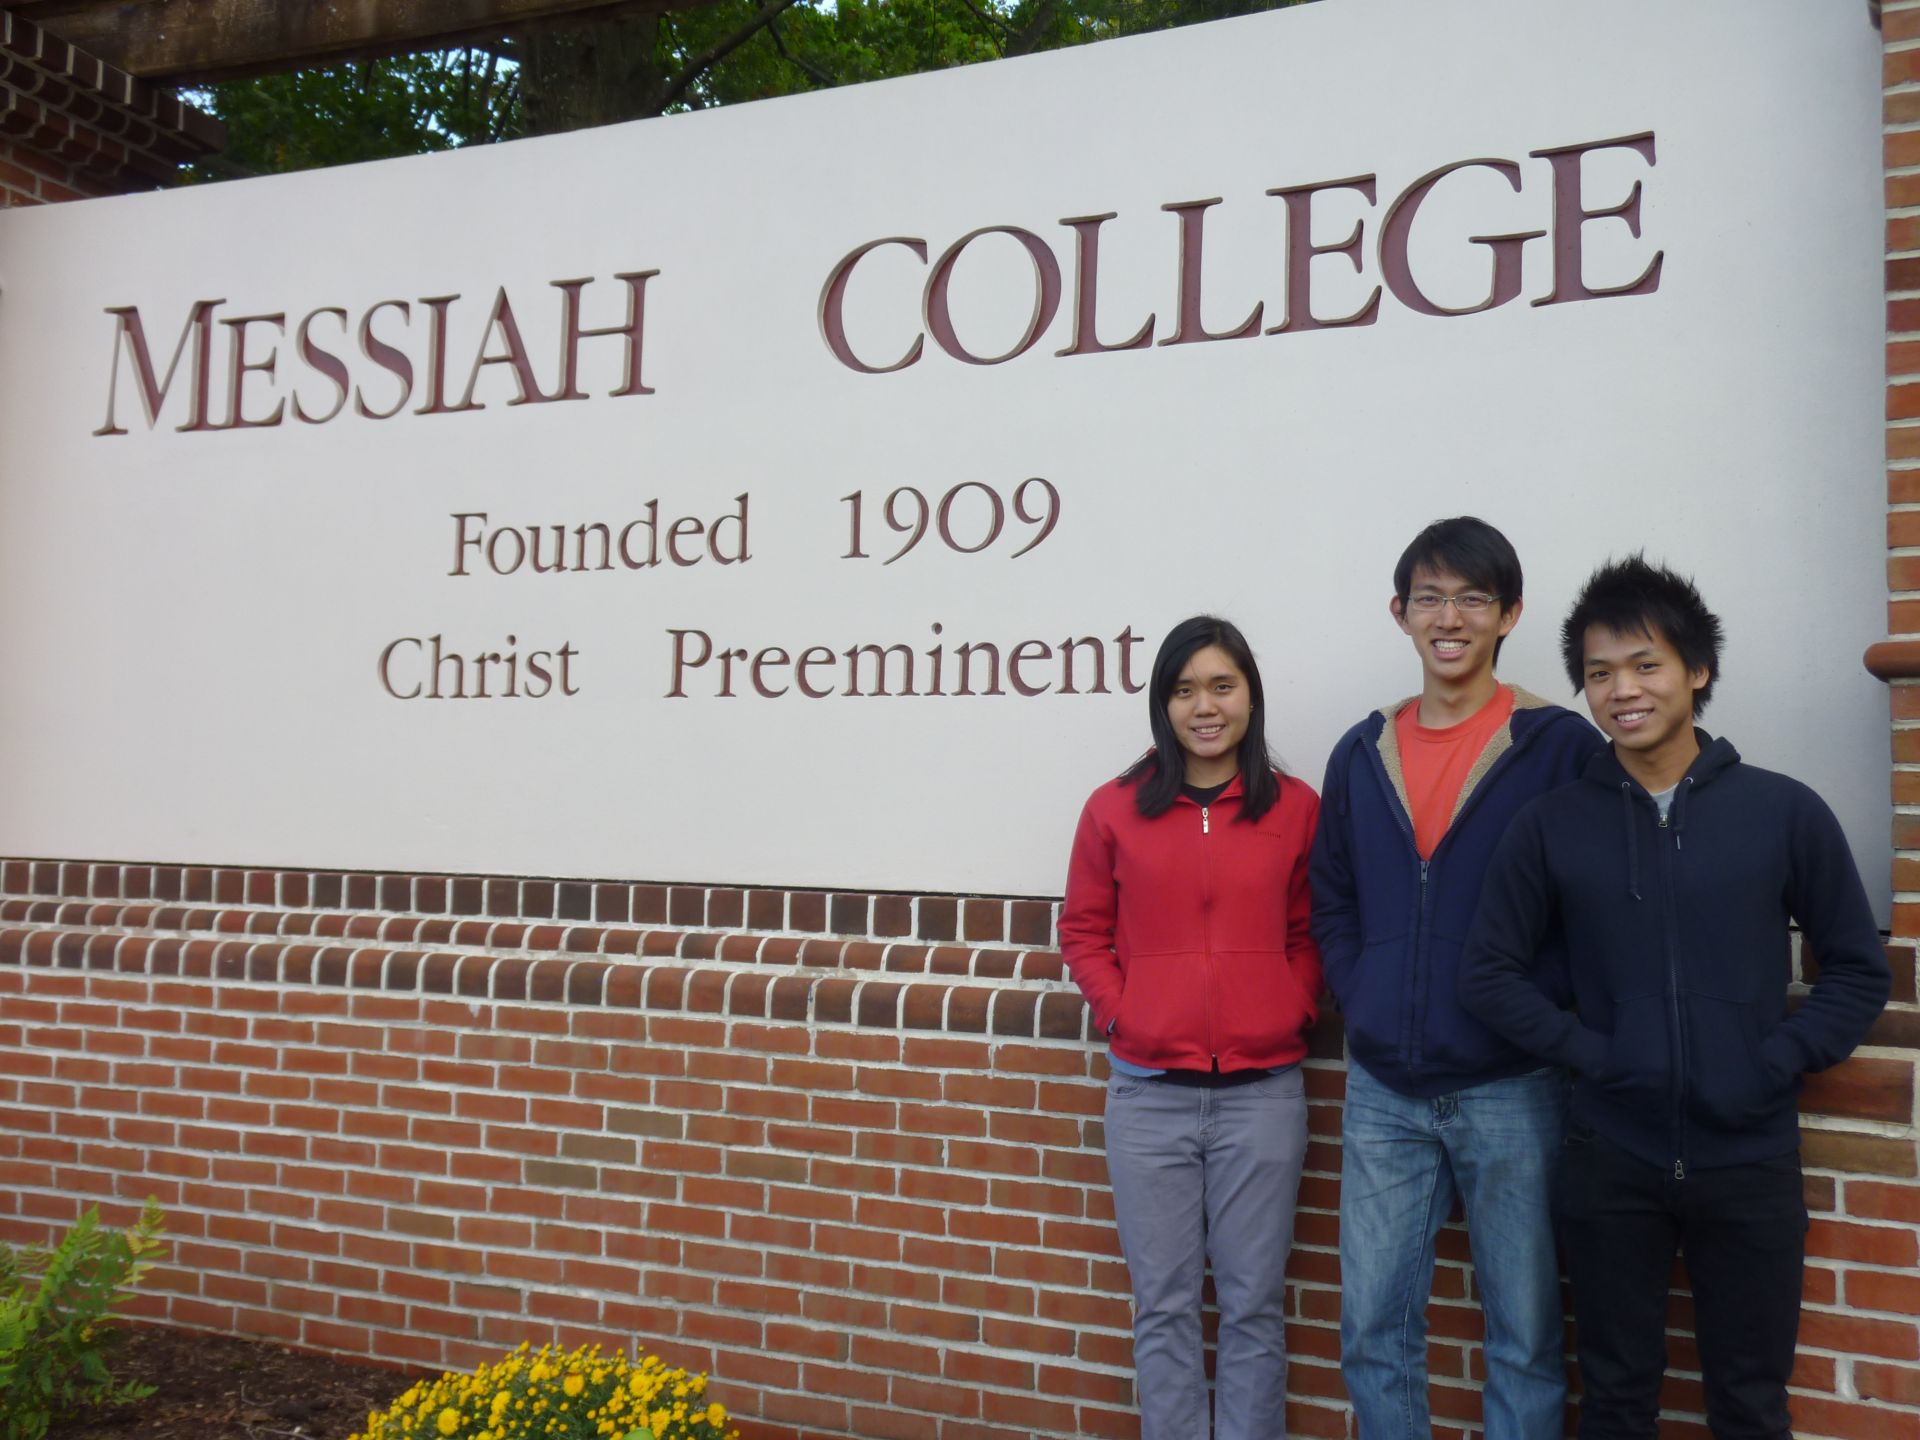 Phoebe Chua (left), Bryan Leong (middle), and Joel Ngui (right) enjoy their welcome to Messiah (and the cold!)